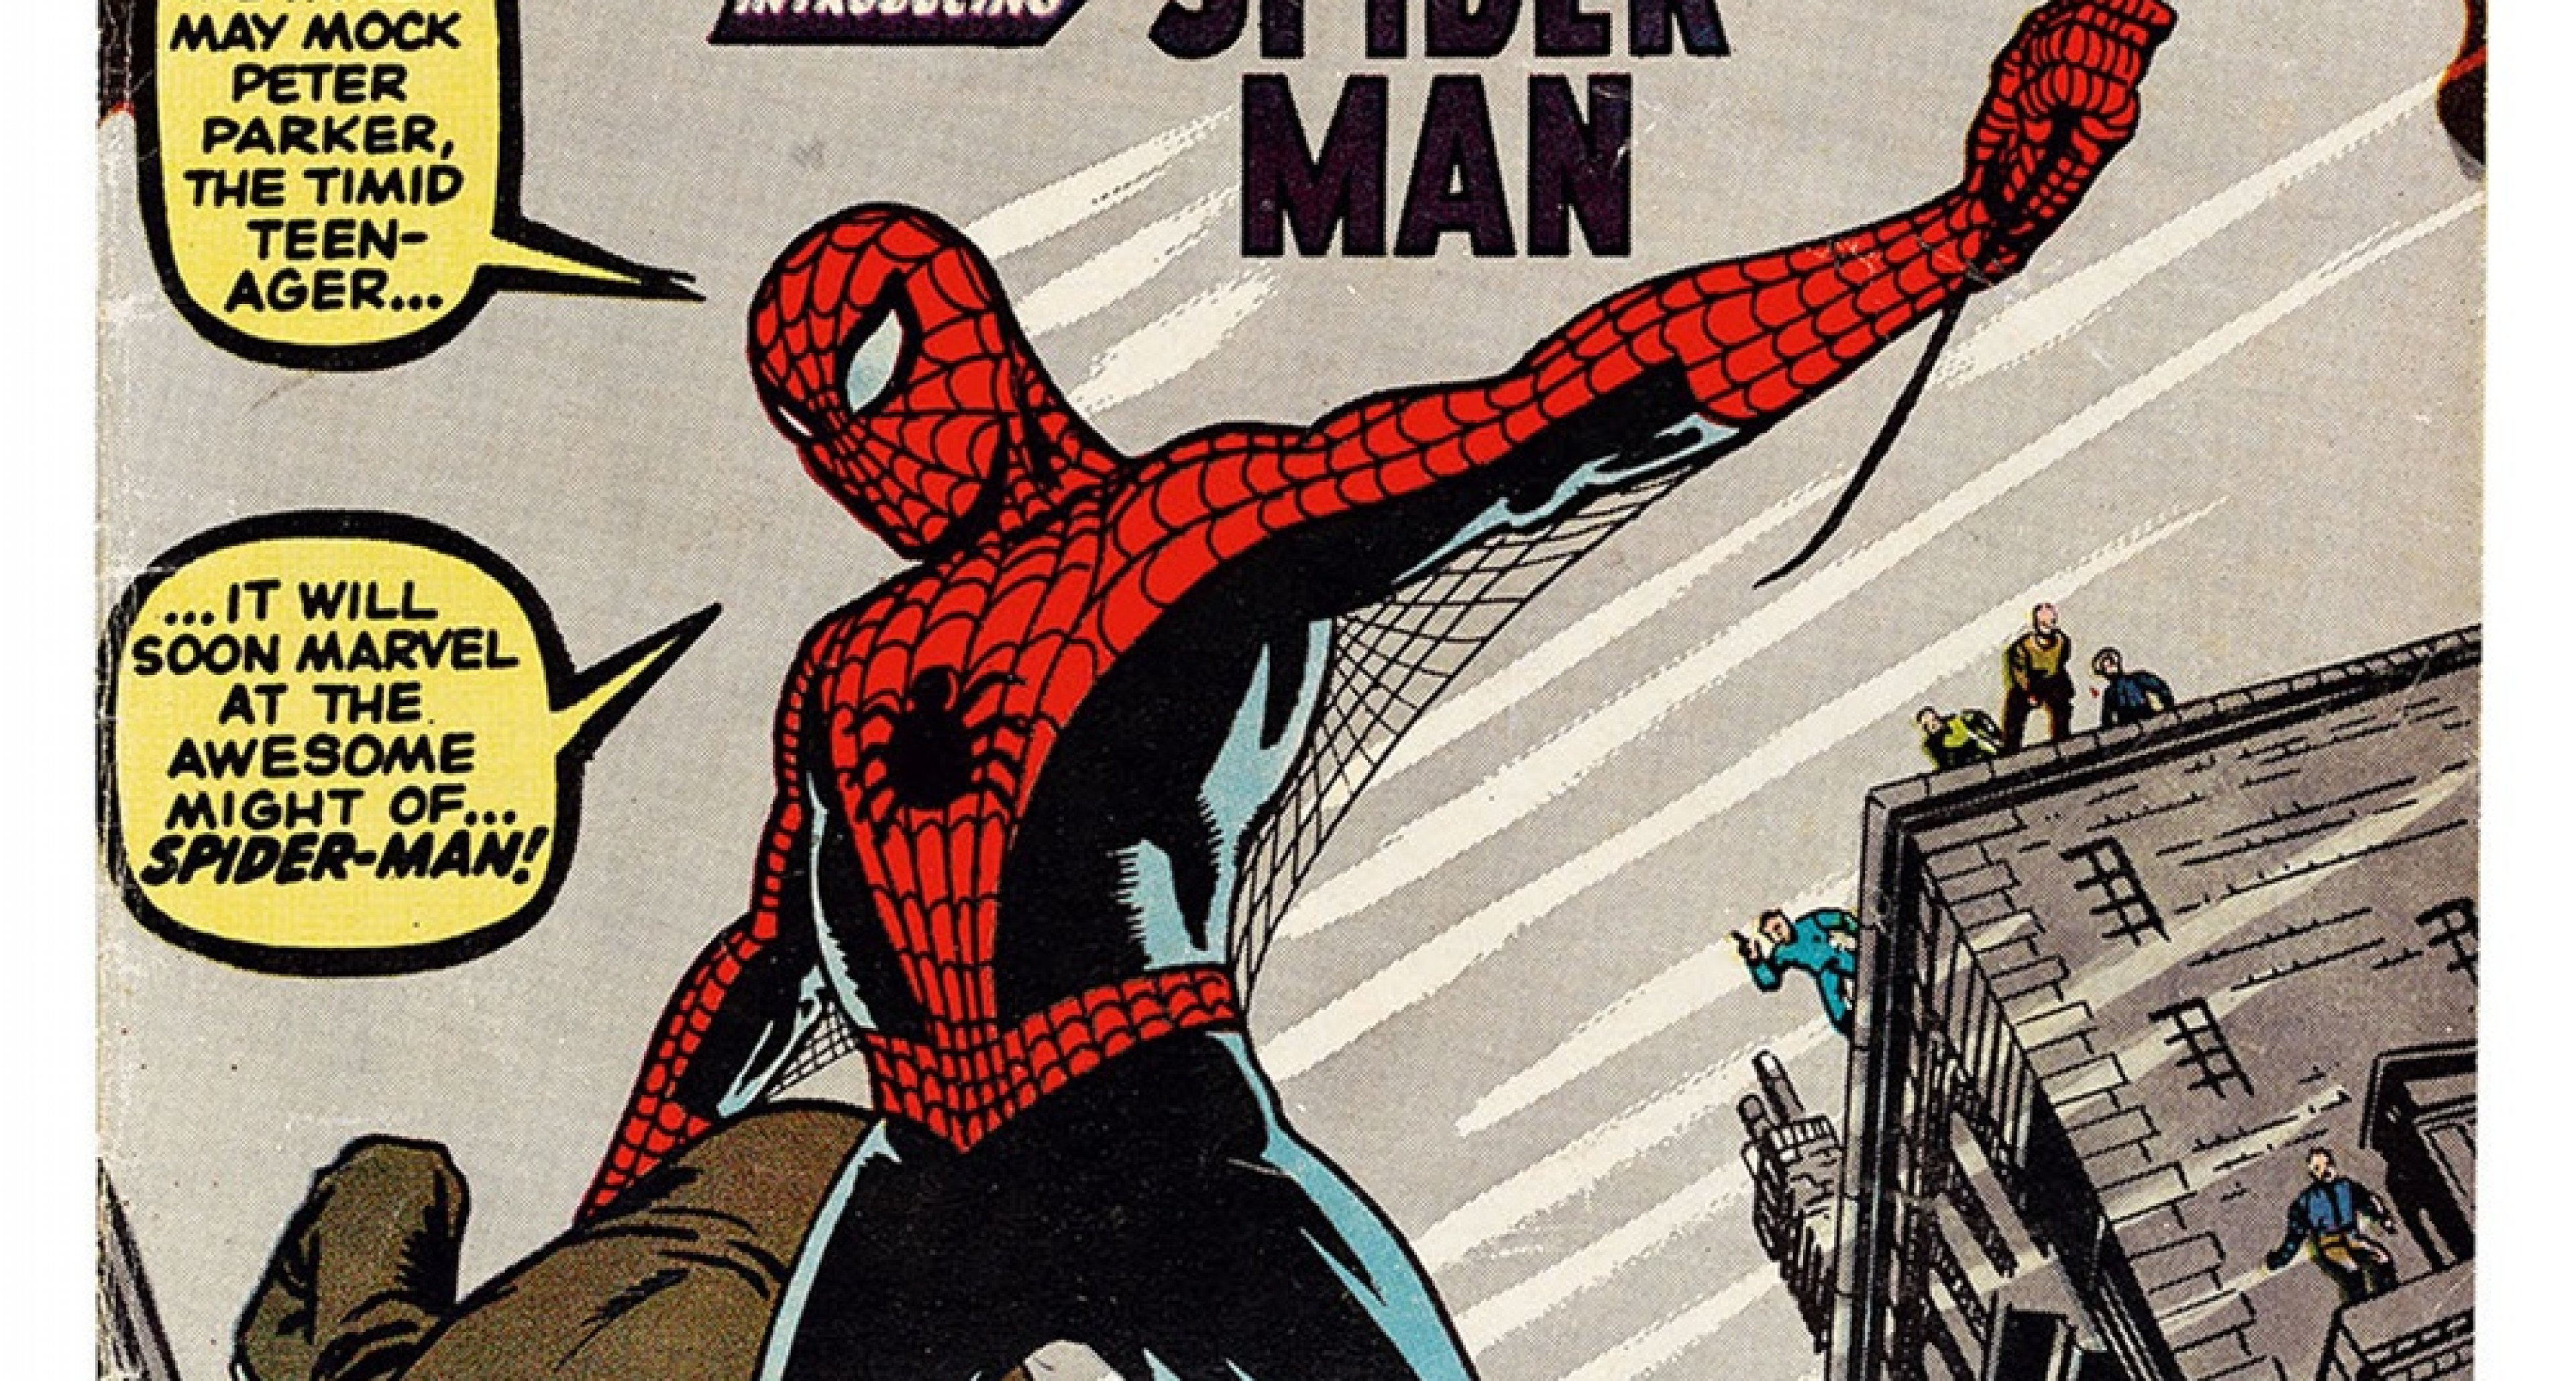 The cover of Amazing Fantasy No. 15 (August 1962) — featuring as iconic an image of Spider- Man as there may ever be — has been paid homage countless times in the several decades since its publication. / TM & © 2018 Marvel Entertainment, LLC